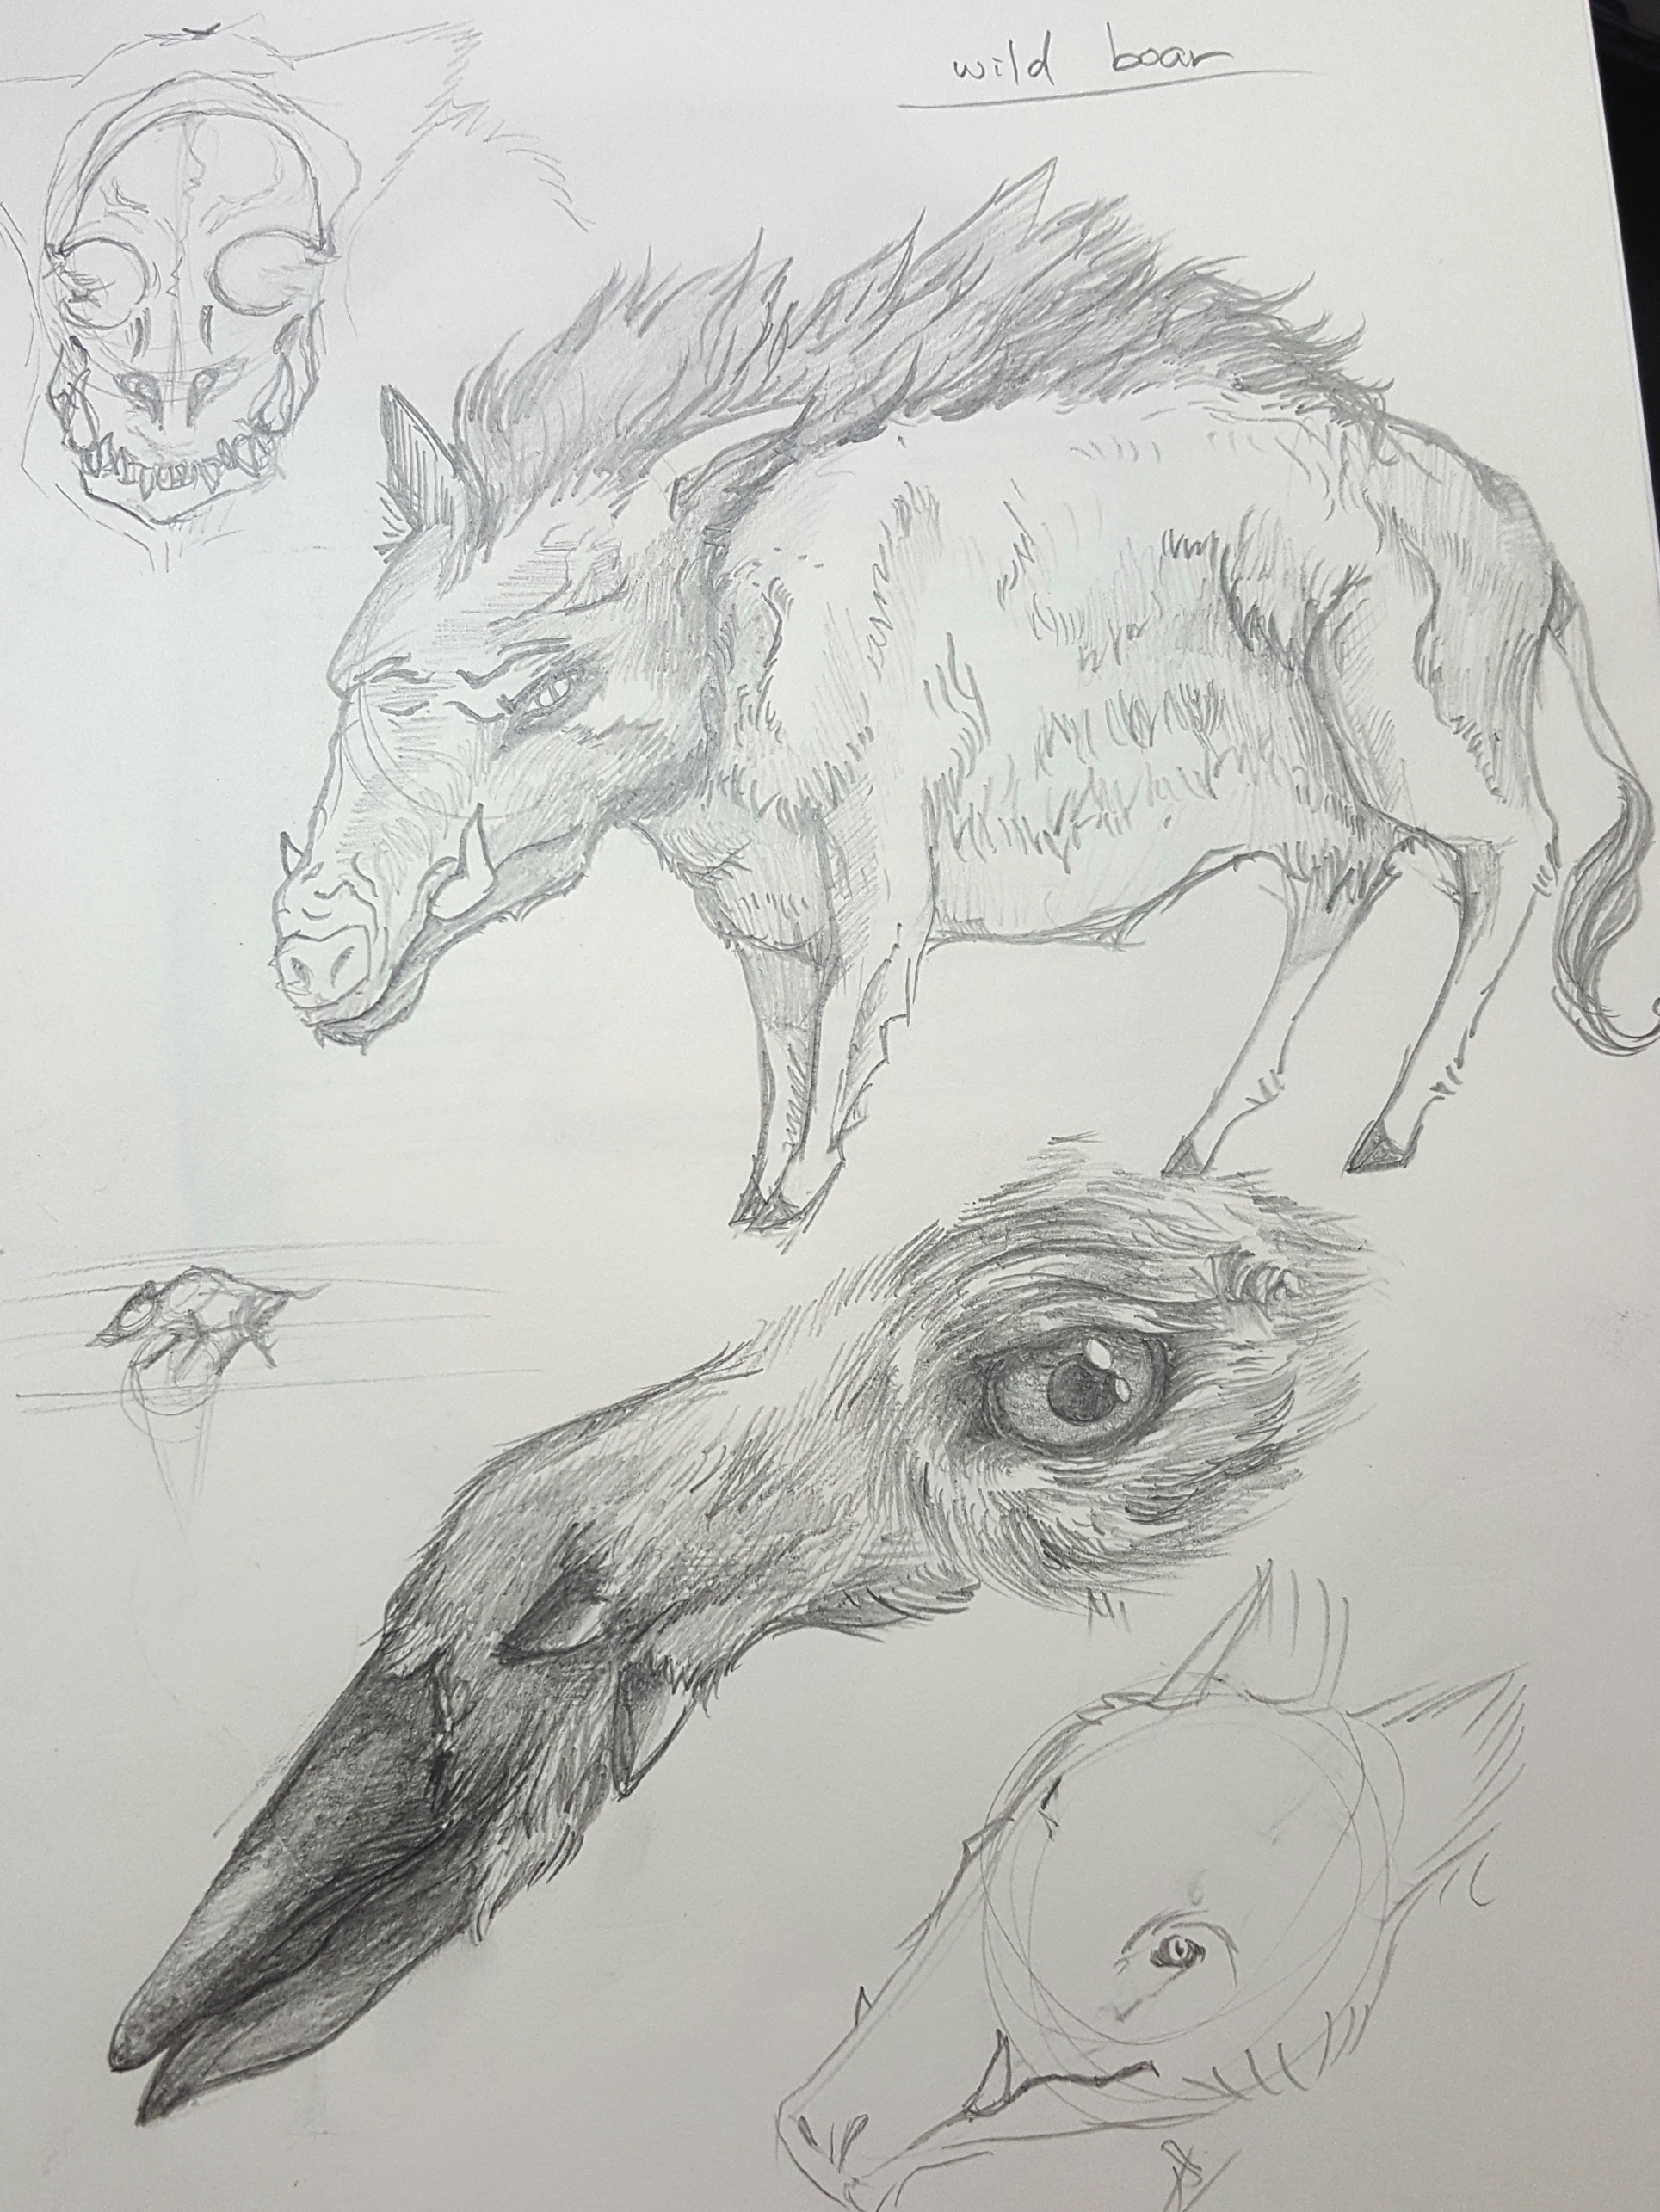 Boar / animals